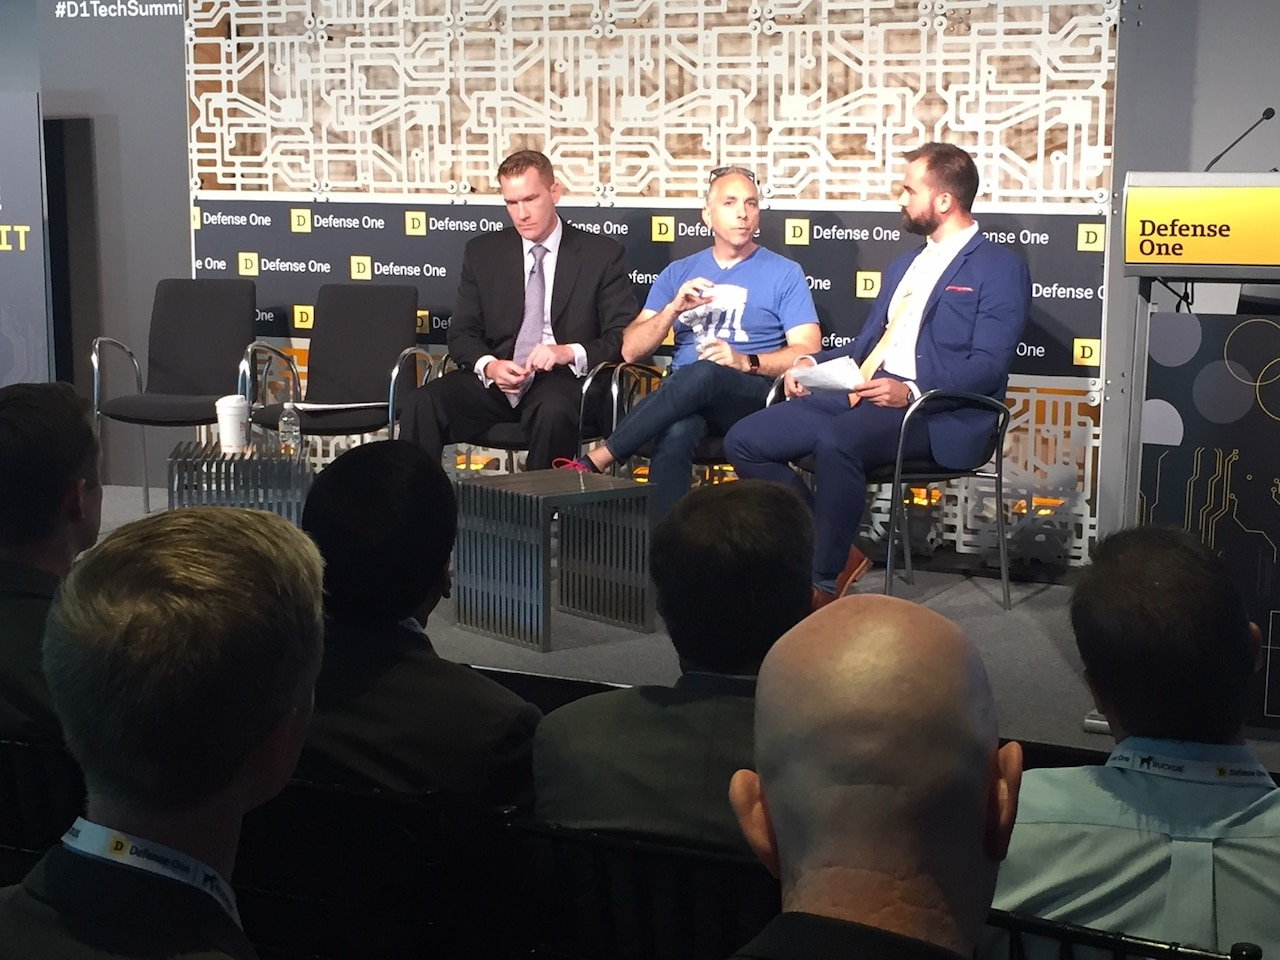 Three men speak as a panel at a technology summit.